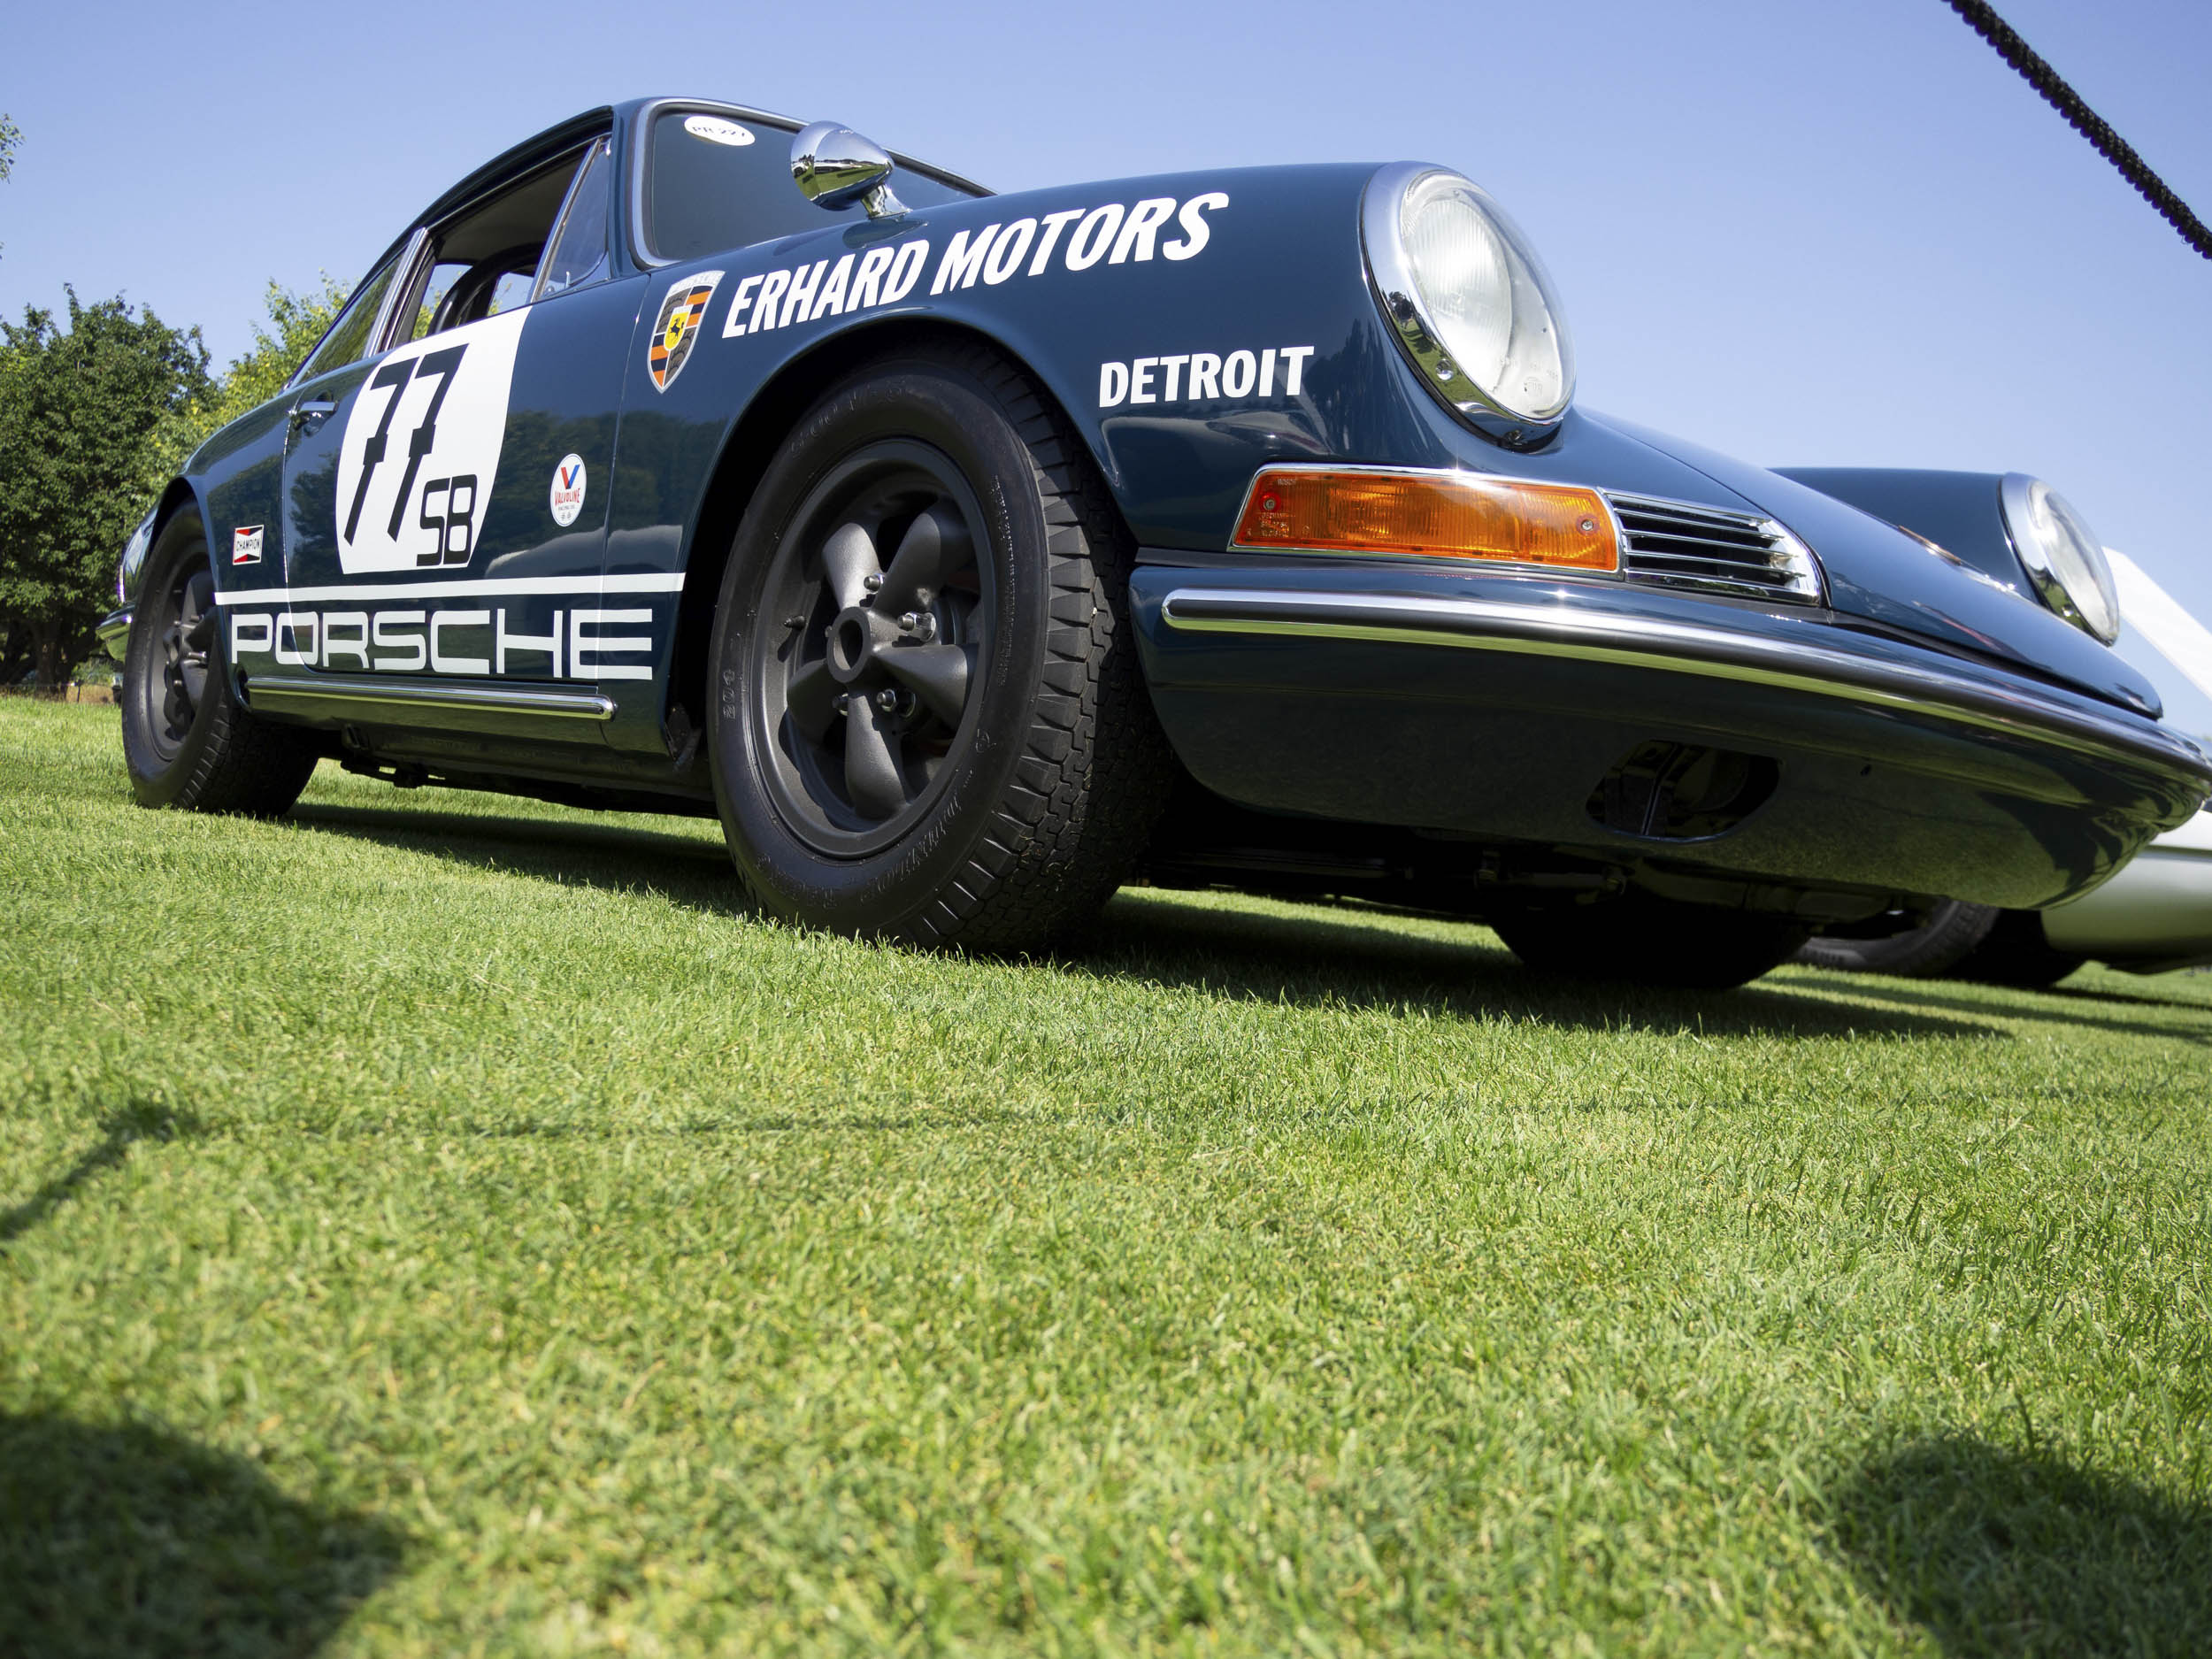 1967 Porsche 911 Coupe by Kamann low front 3/4